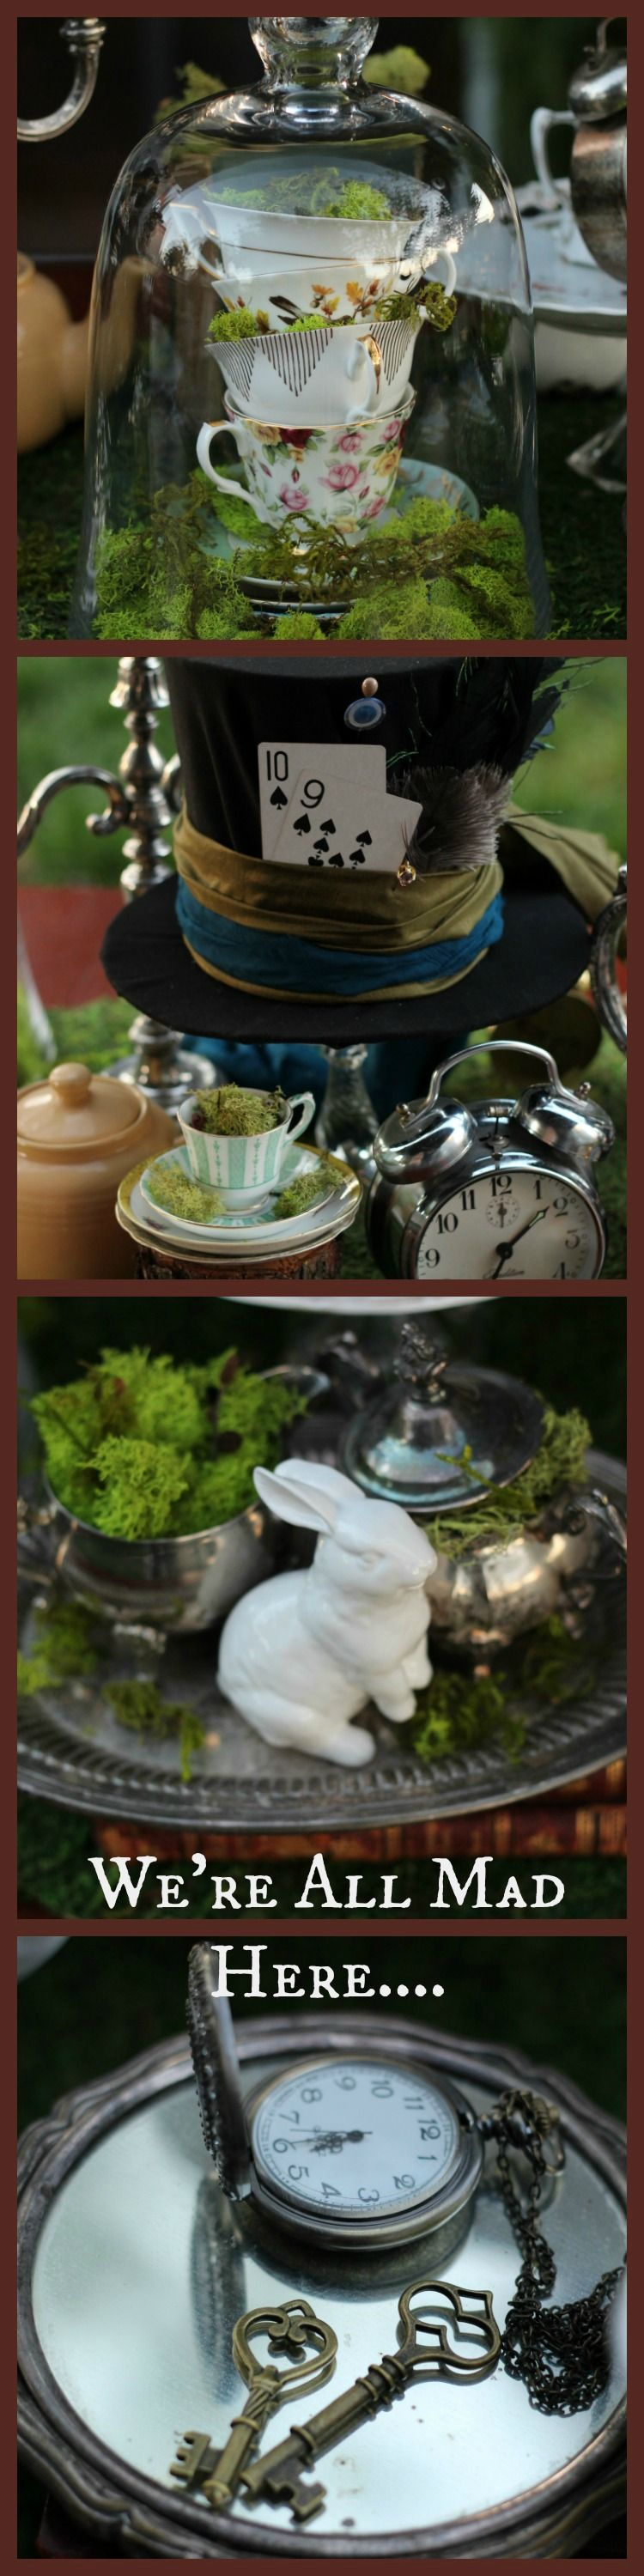 Mad Hatter, Alice in Wonderland, Through the Looking Glass, themed decor ideas. Fantasy, fairytale, mad hatter hat, vintage tea cups, white rabbit, vintage clocks, pocket watch, glass cloches, Candlesticks, vintage silver, vintage hand mirror, keys, moss, garden, vintage books